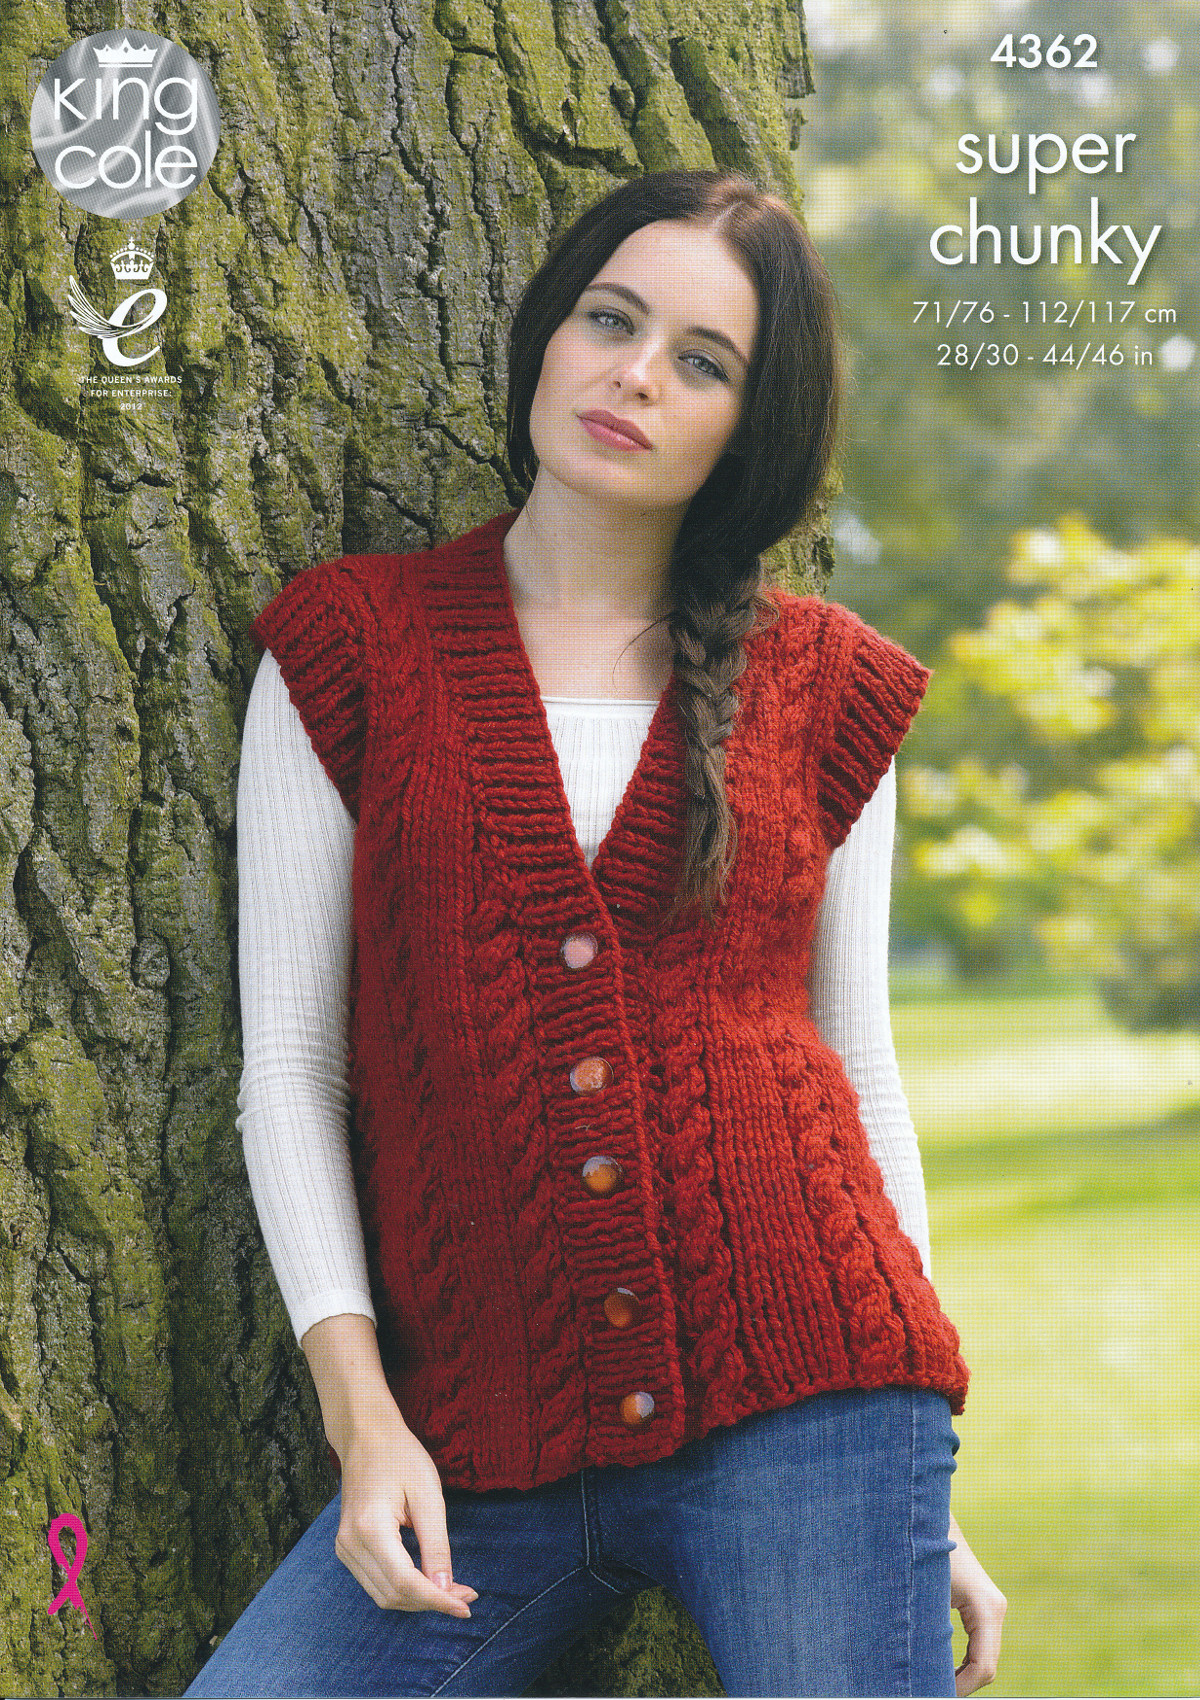 King Cole Ladies Super Chunky Knitting Pattern Cable Knit Waistcoat ...